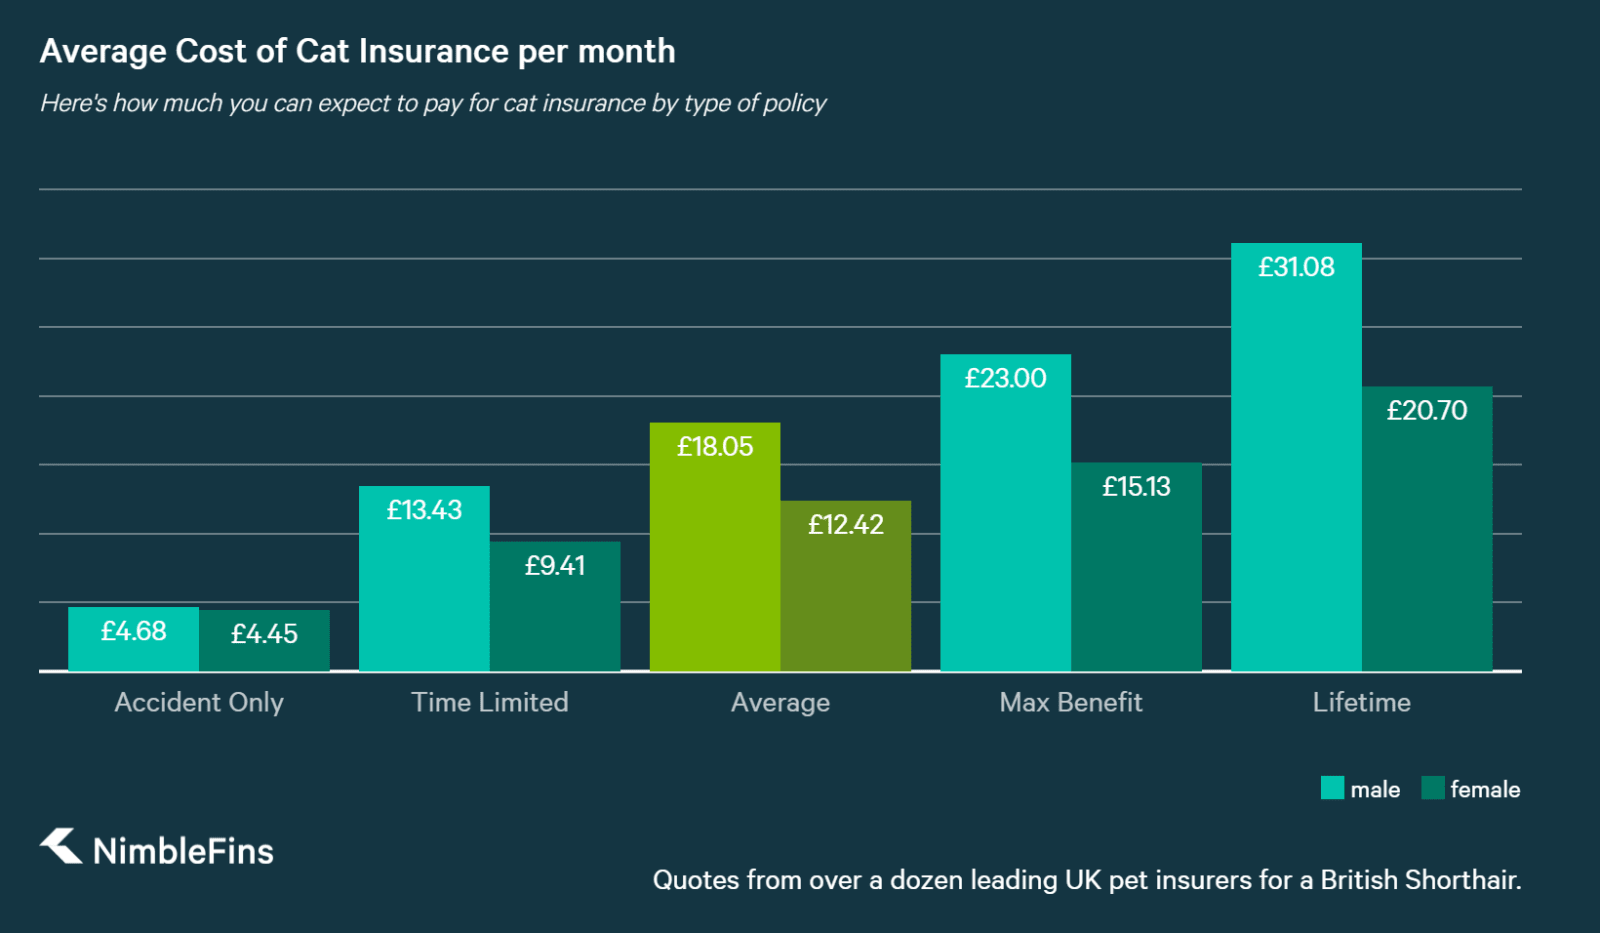 chart showing how much pet owners will pay for cat insurance per month